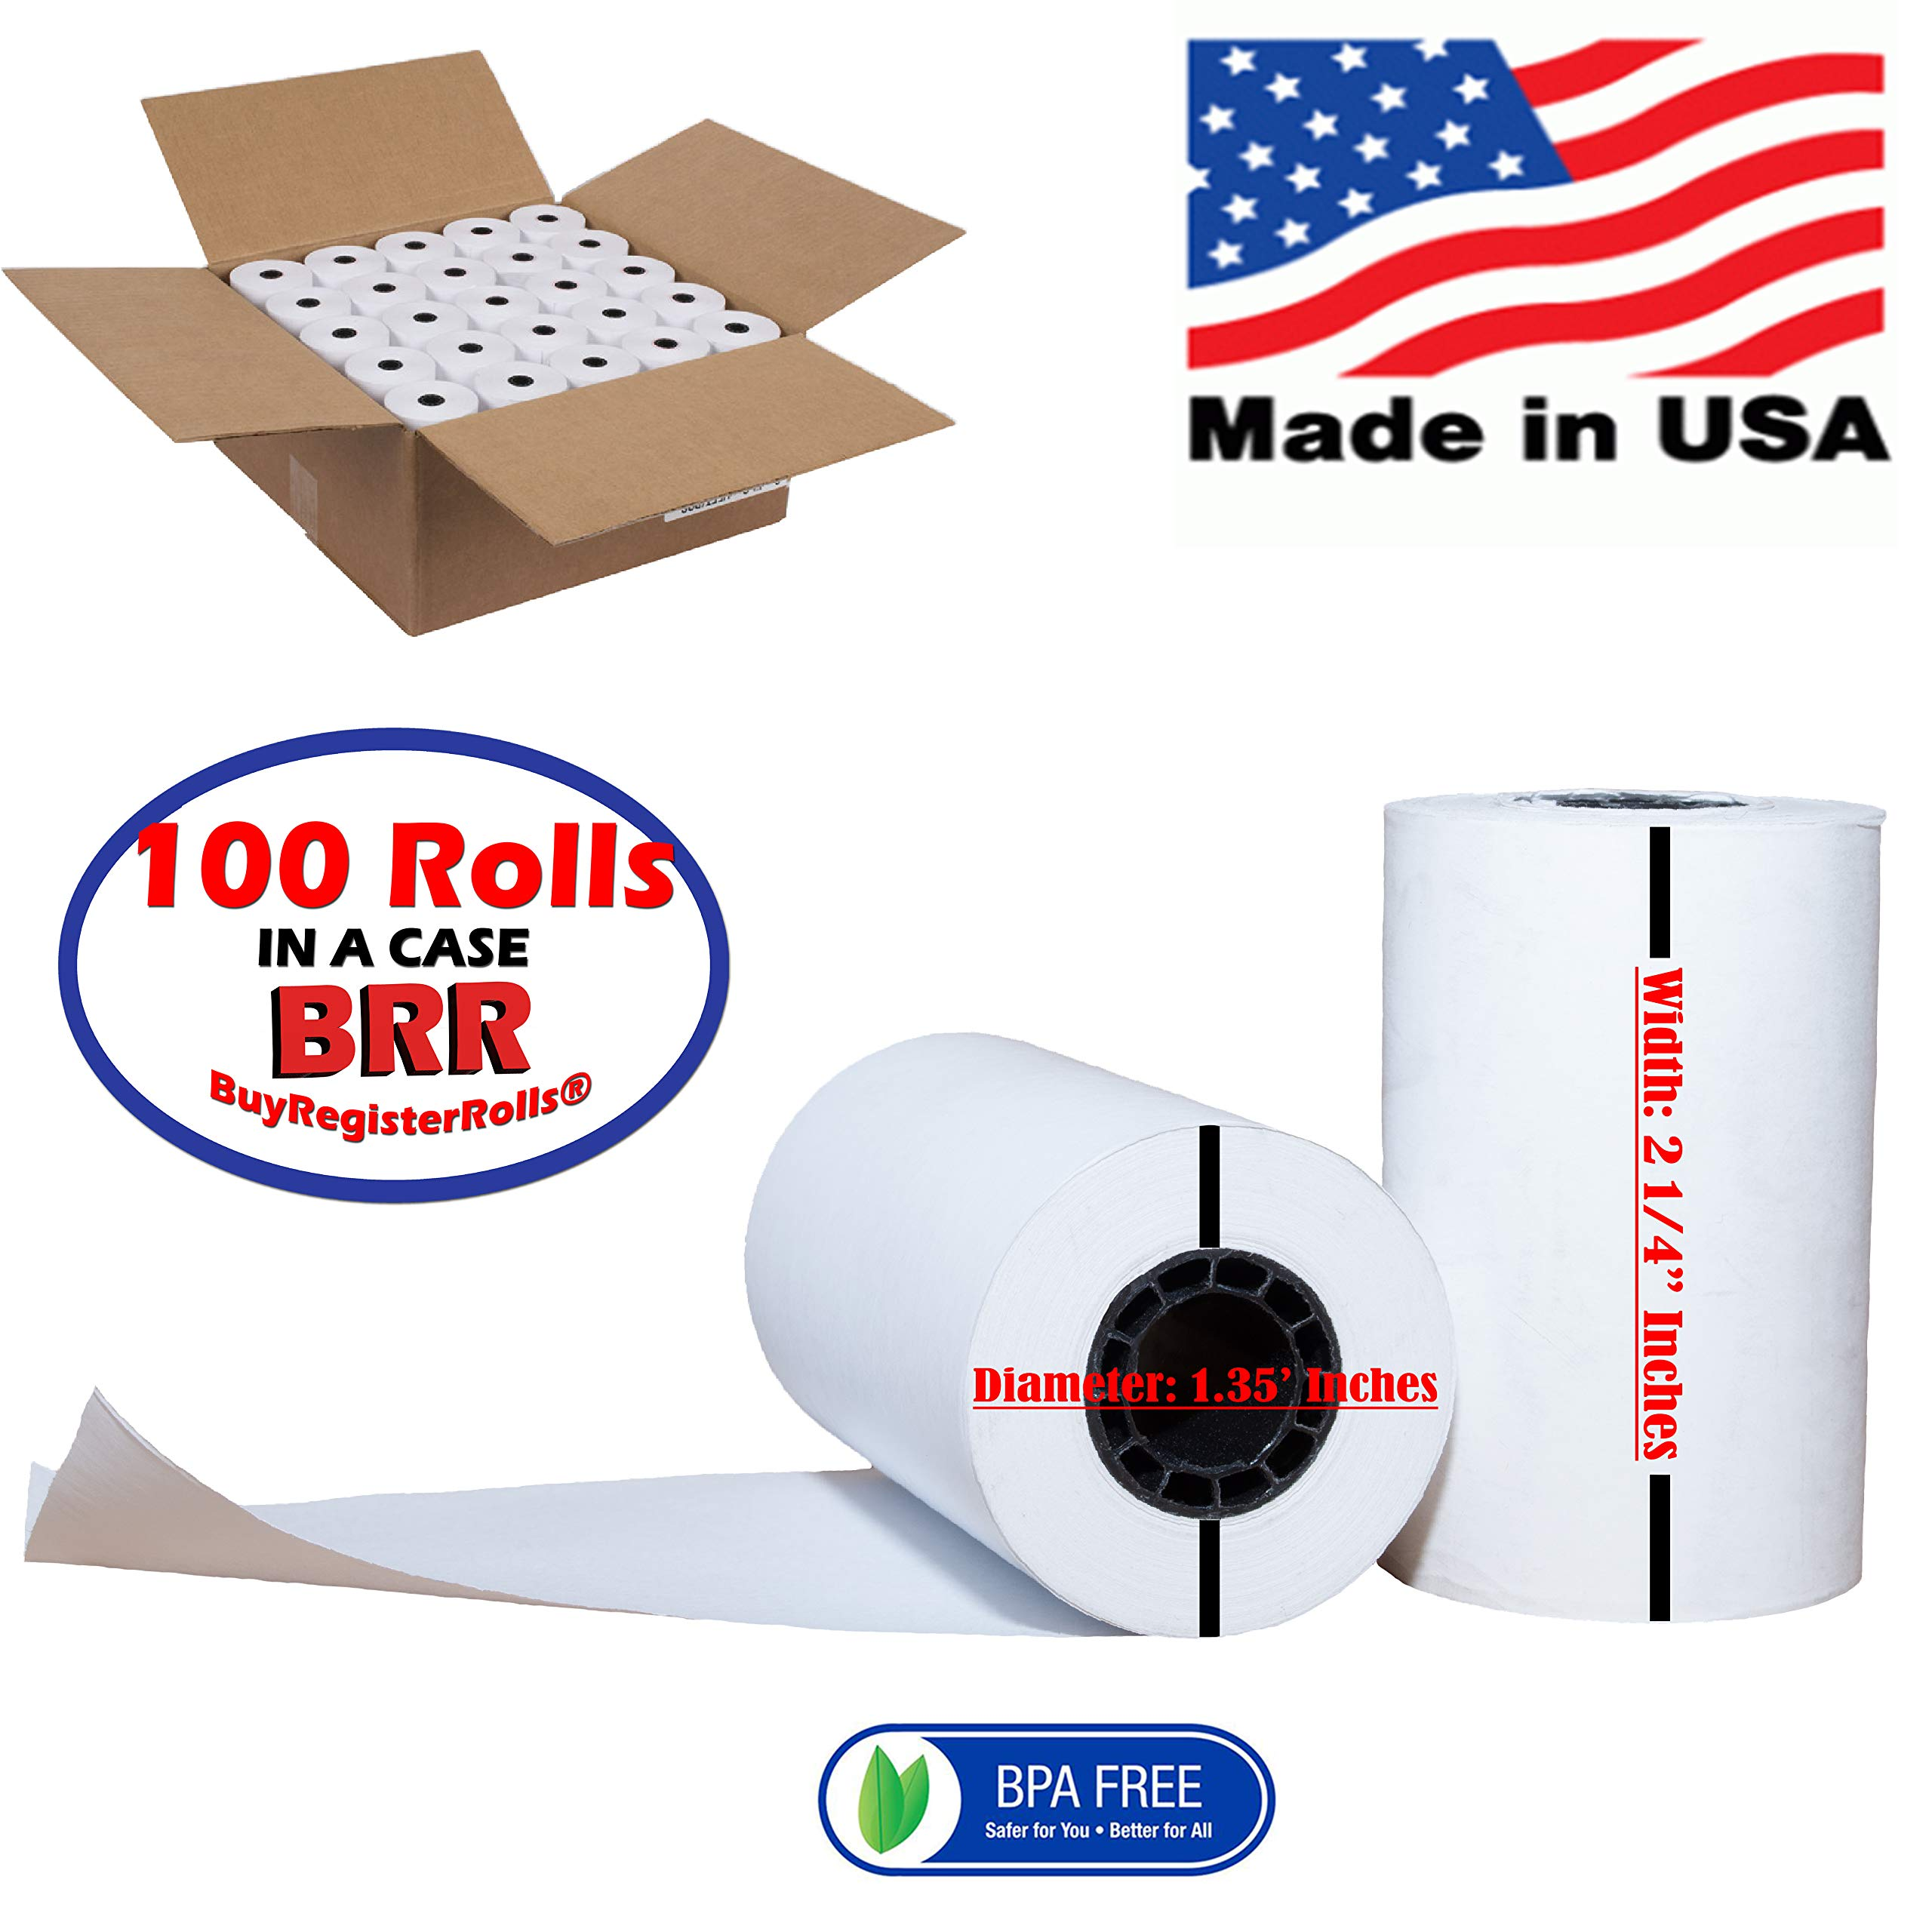 VERIFONE Vx670 /& Vx680 APPROVED QUALITY THERMAL PAPER 10 ROLLS